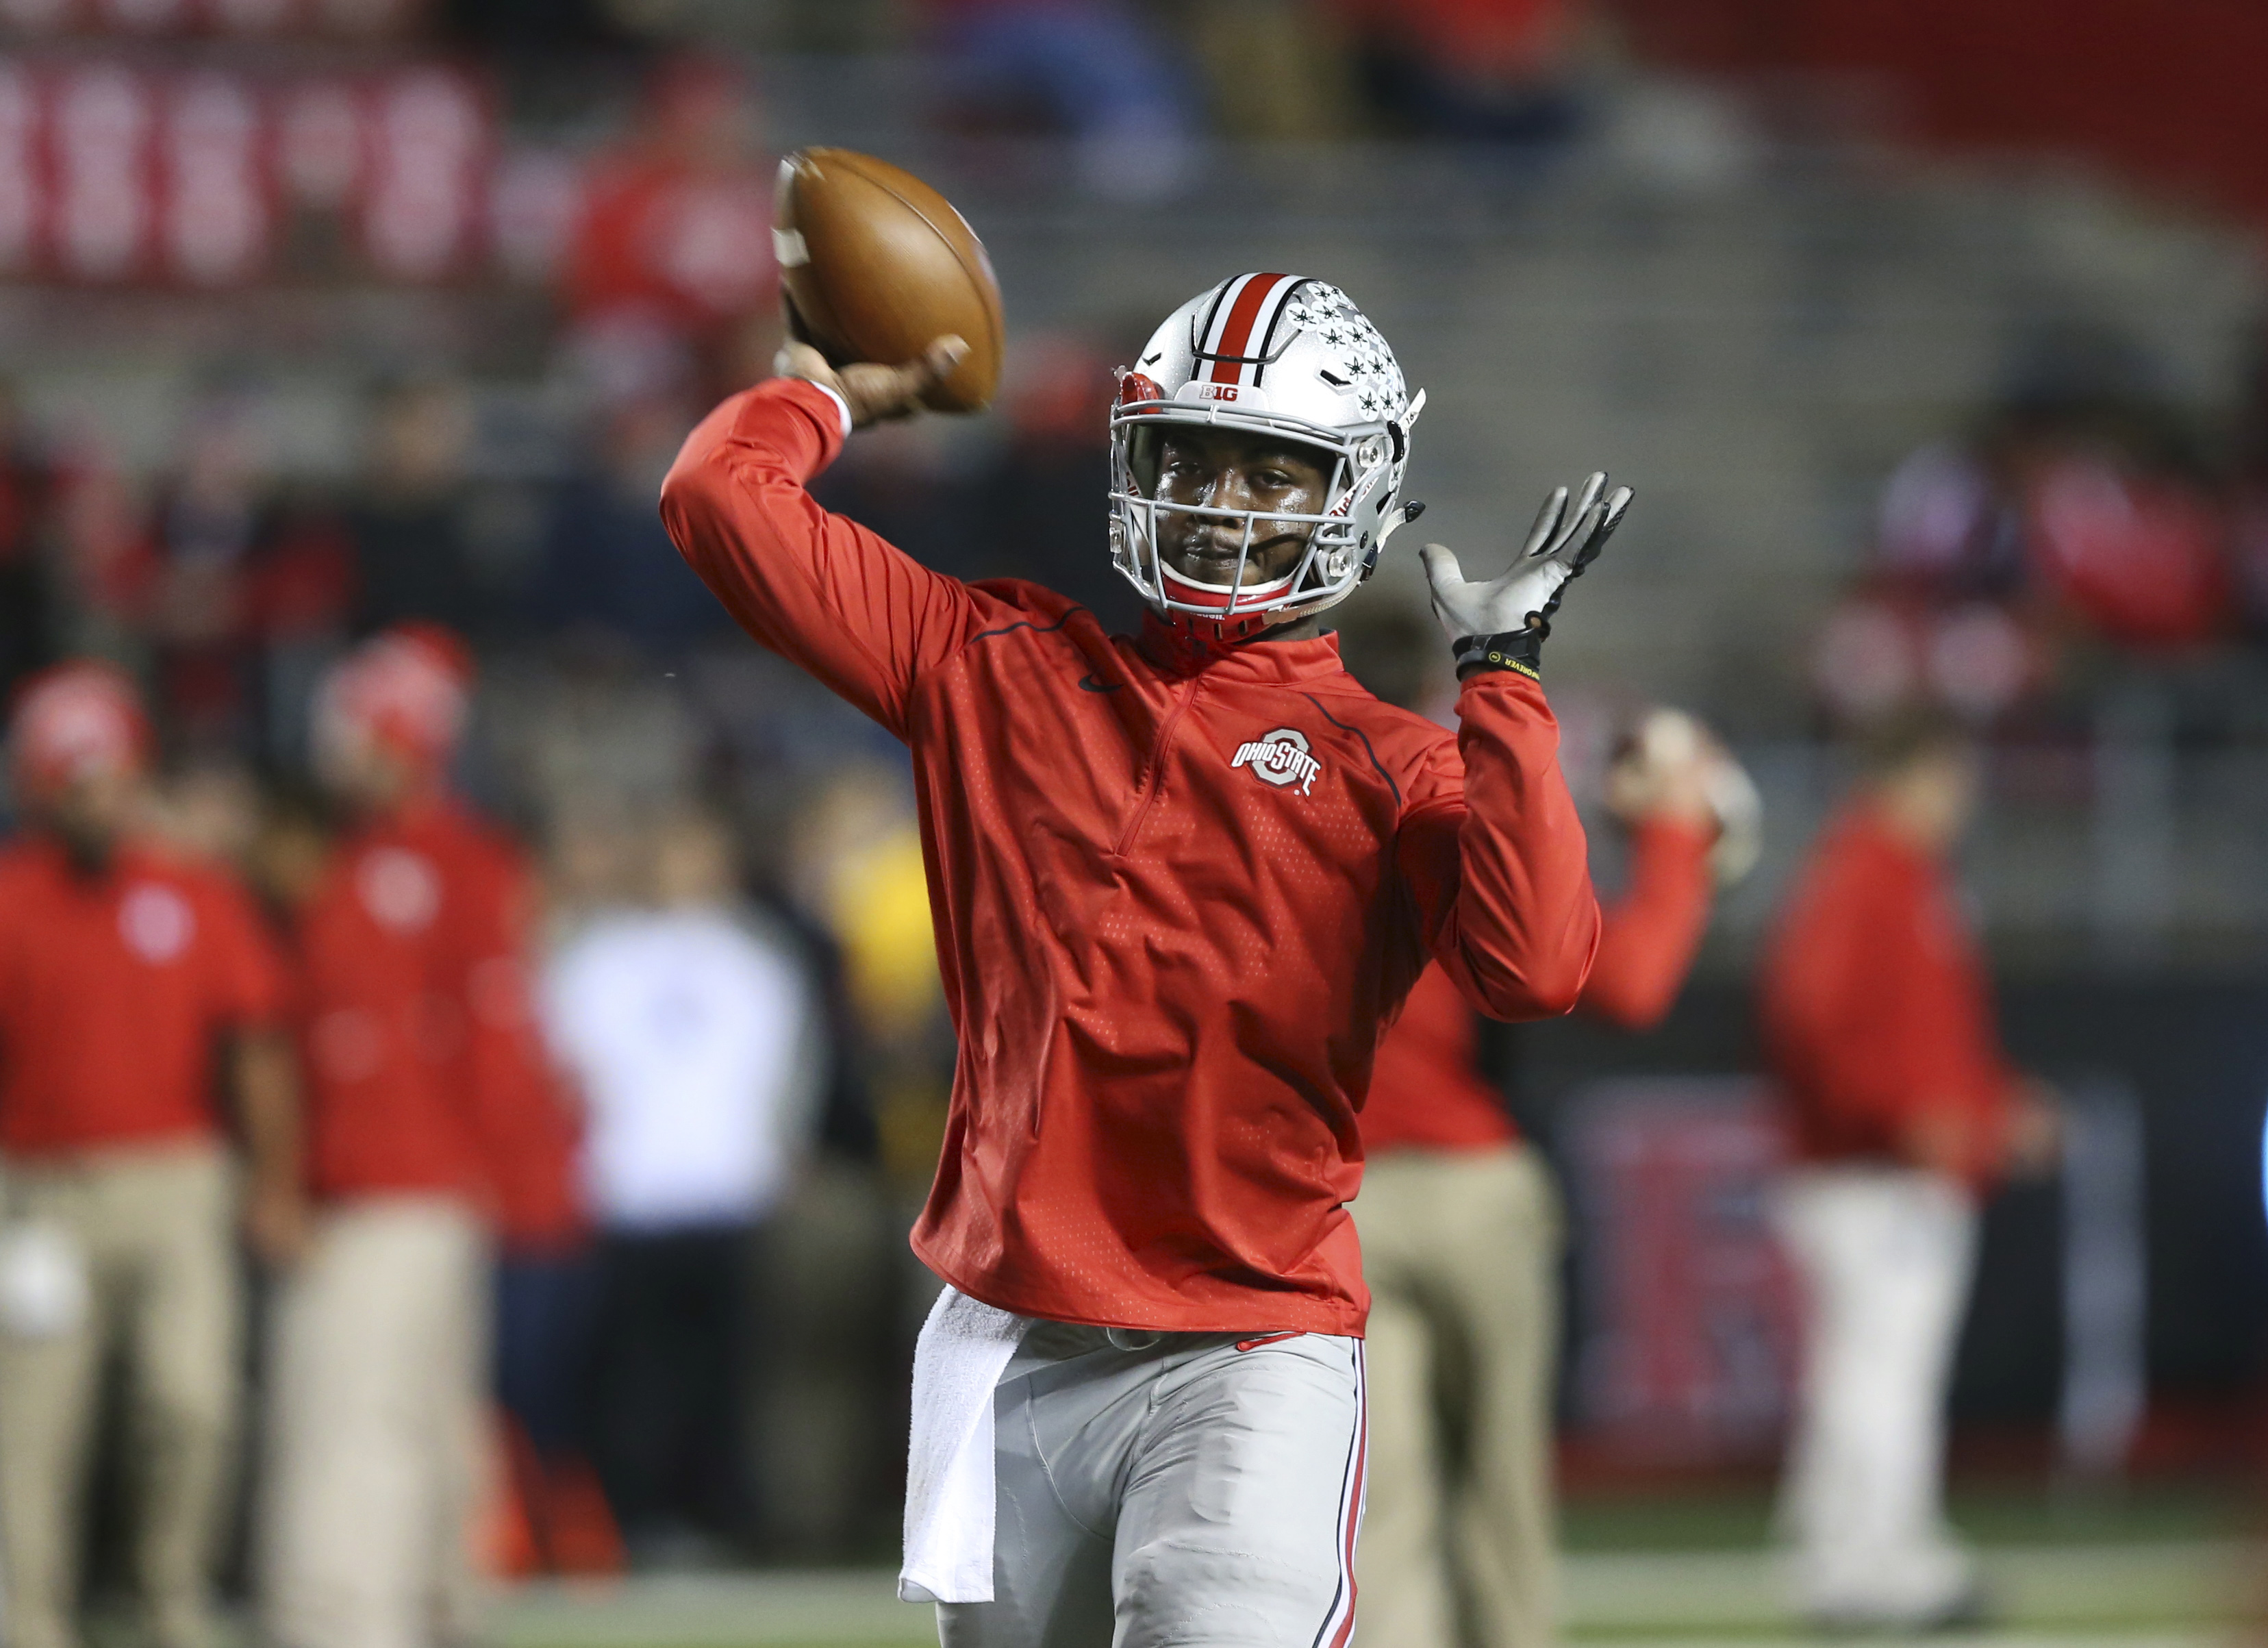 Ohio State quarterback J.T. Barrett throws a pass as the team warms up before an NCAA college football game against Rutgers Saturday, Oct. 24, 2015, in Piscataway, N.J. (AP Photo/Mel Evans)